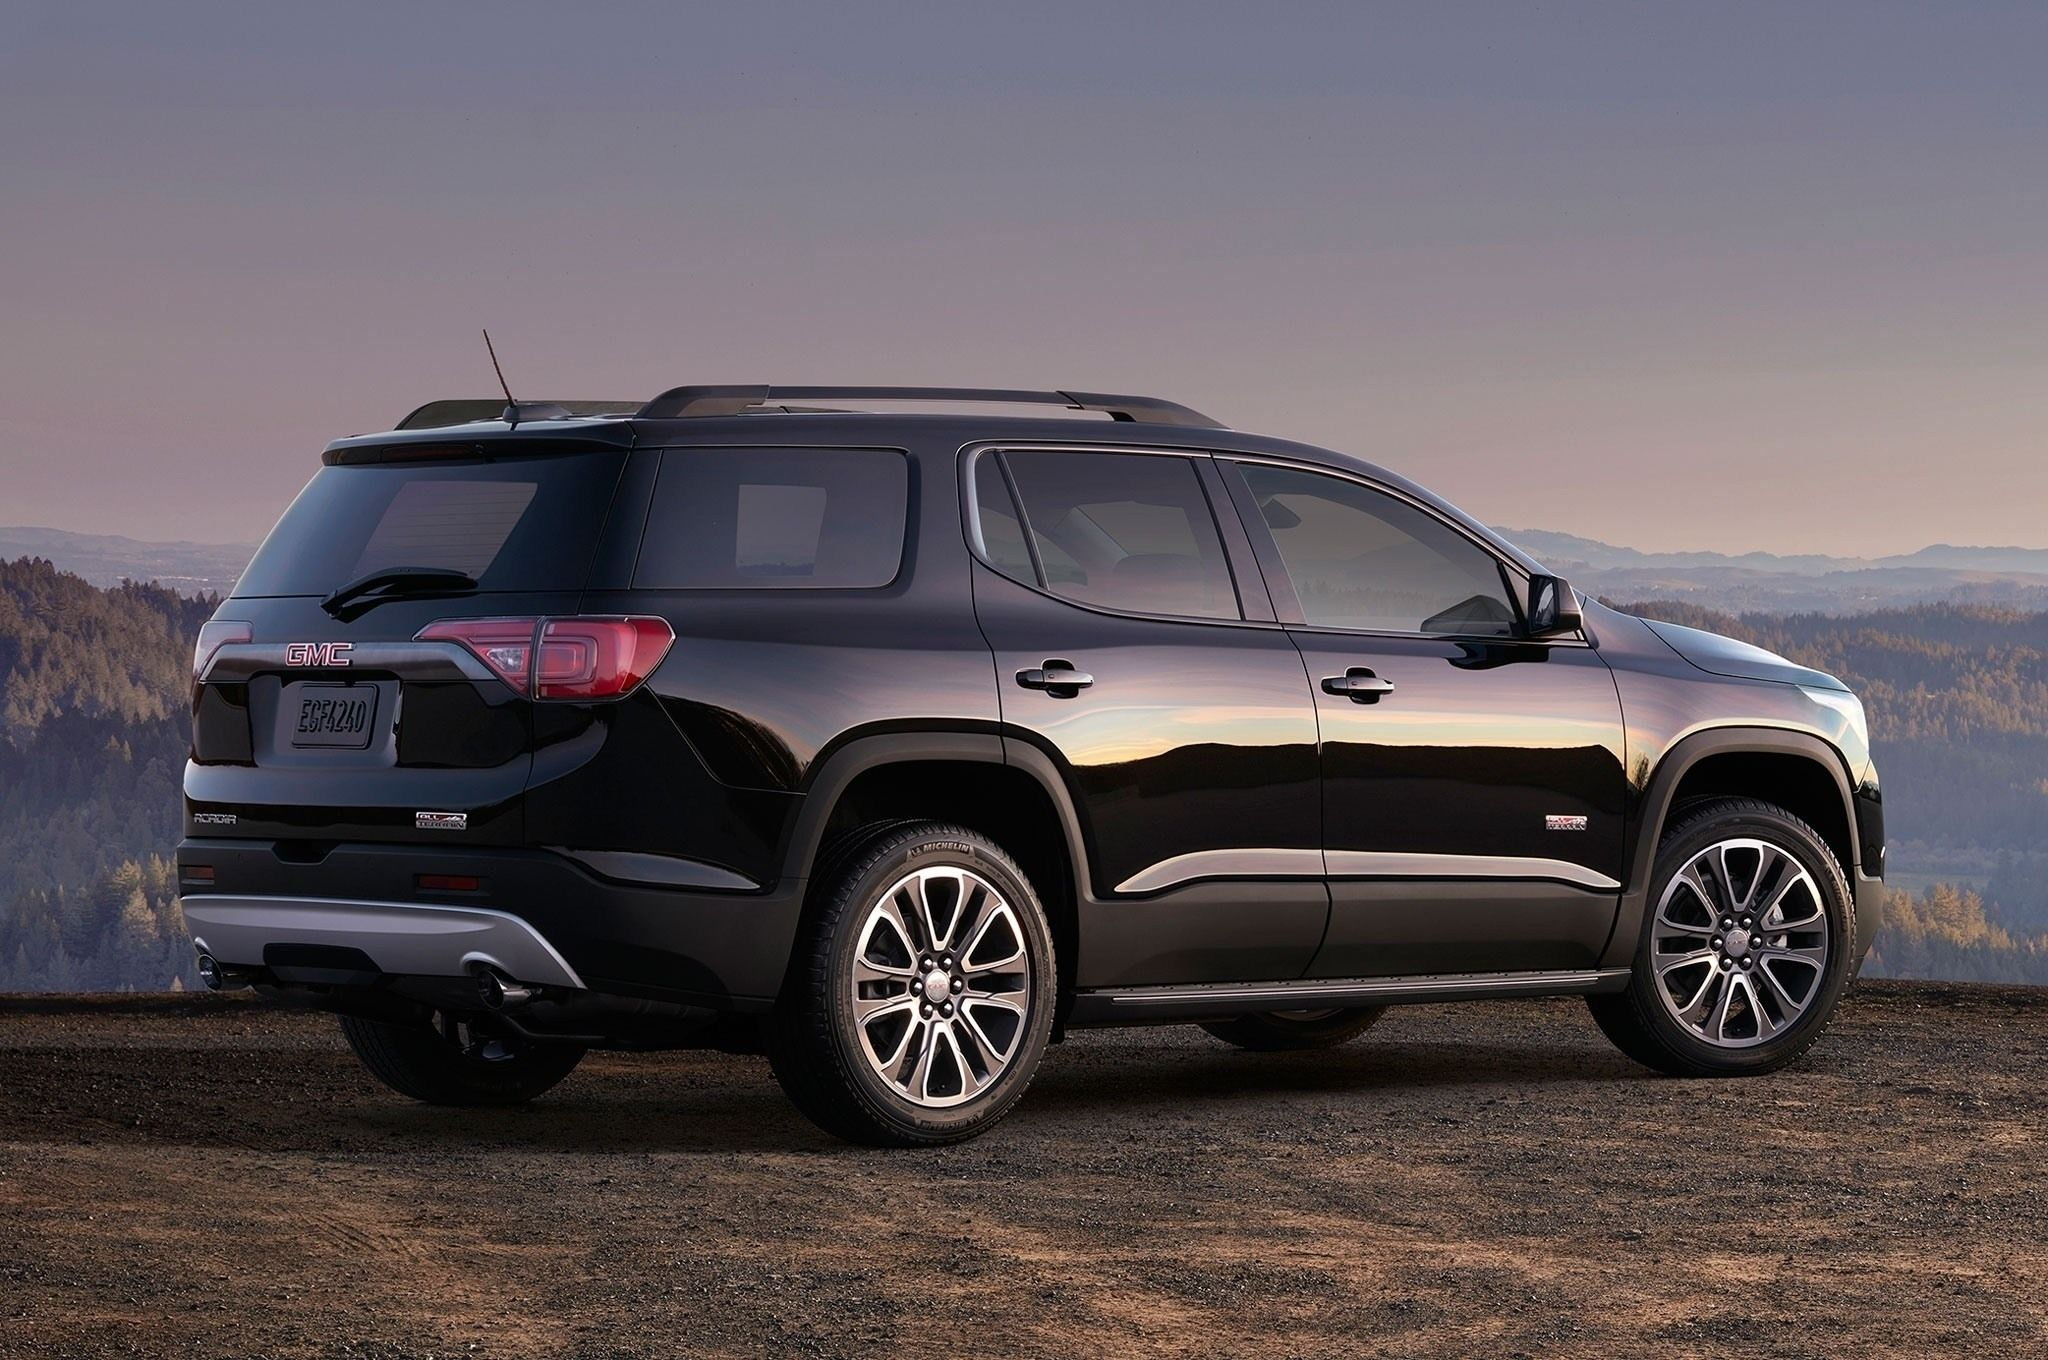 New 2019 Gmc Acadia Towing Capacity Release